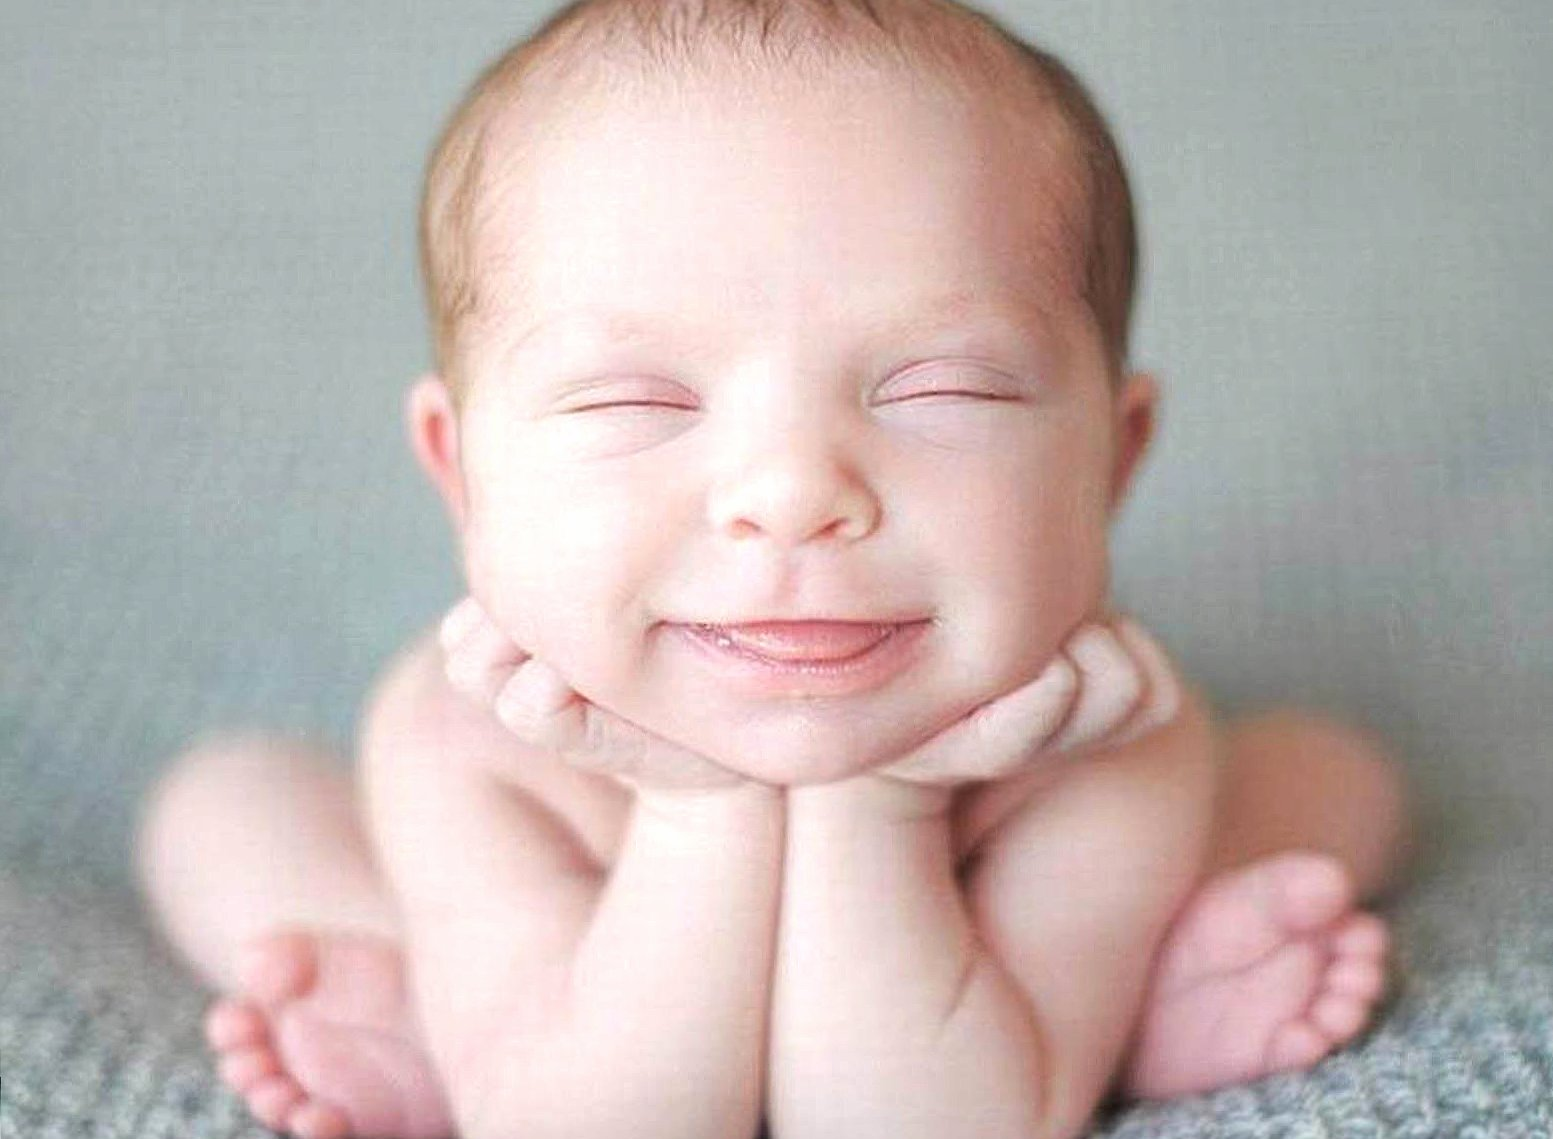 Funny little smiling baby wallpapers HD quality